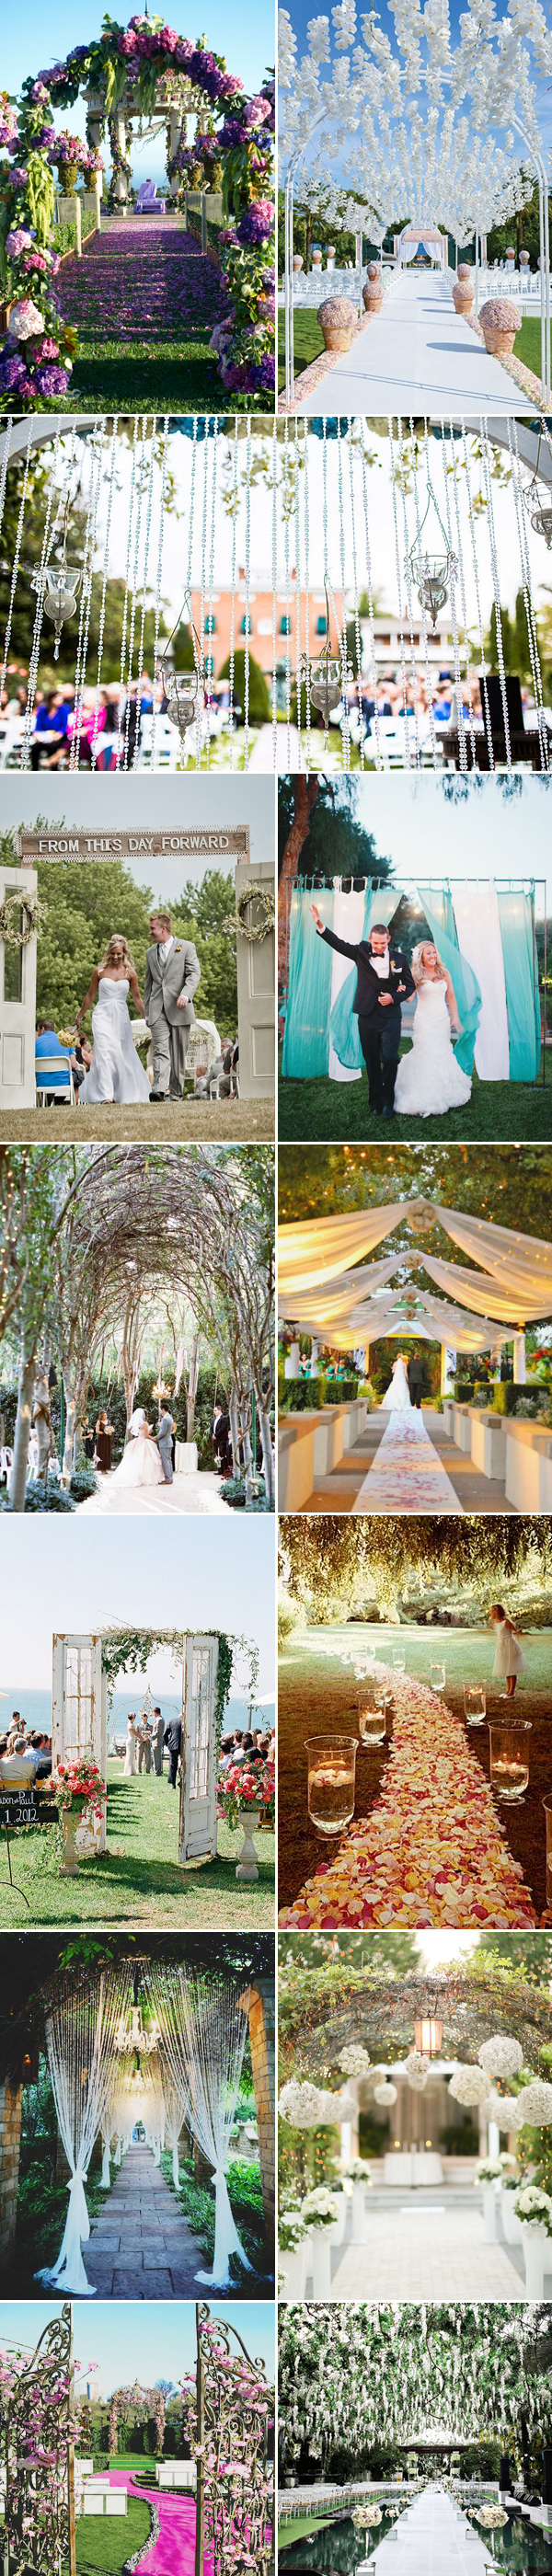 Making A Beautiful Entrance 26 Creative Wedding Entrance Decor Ideas Praise Wedding